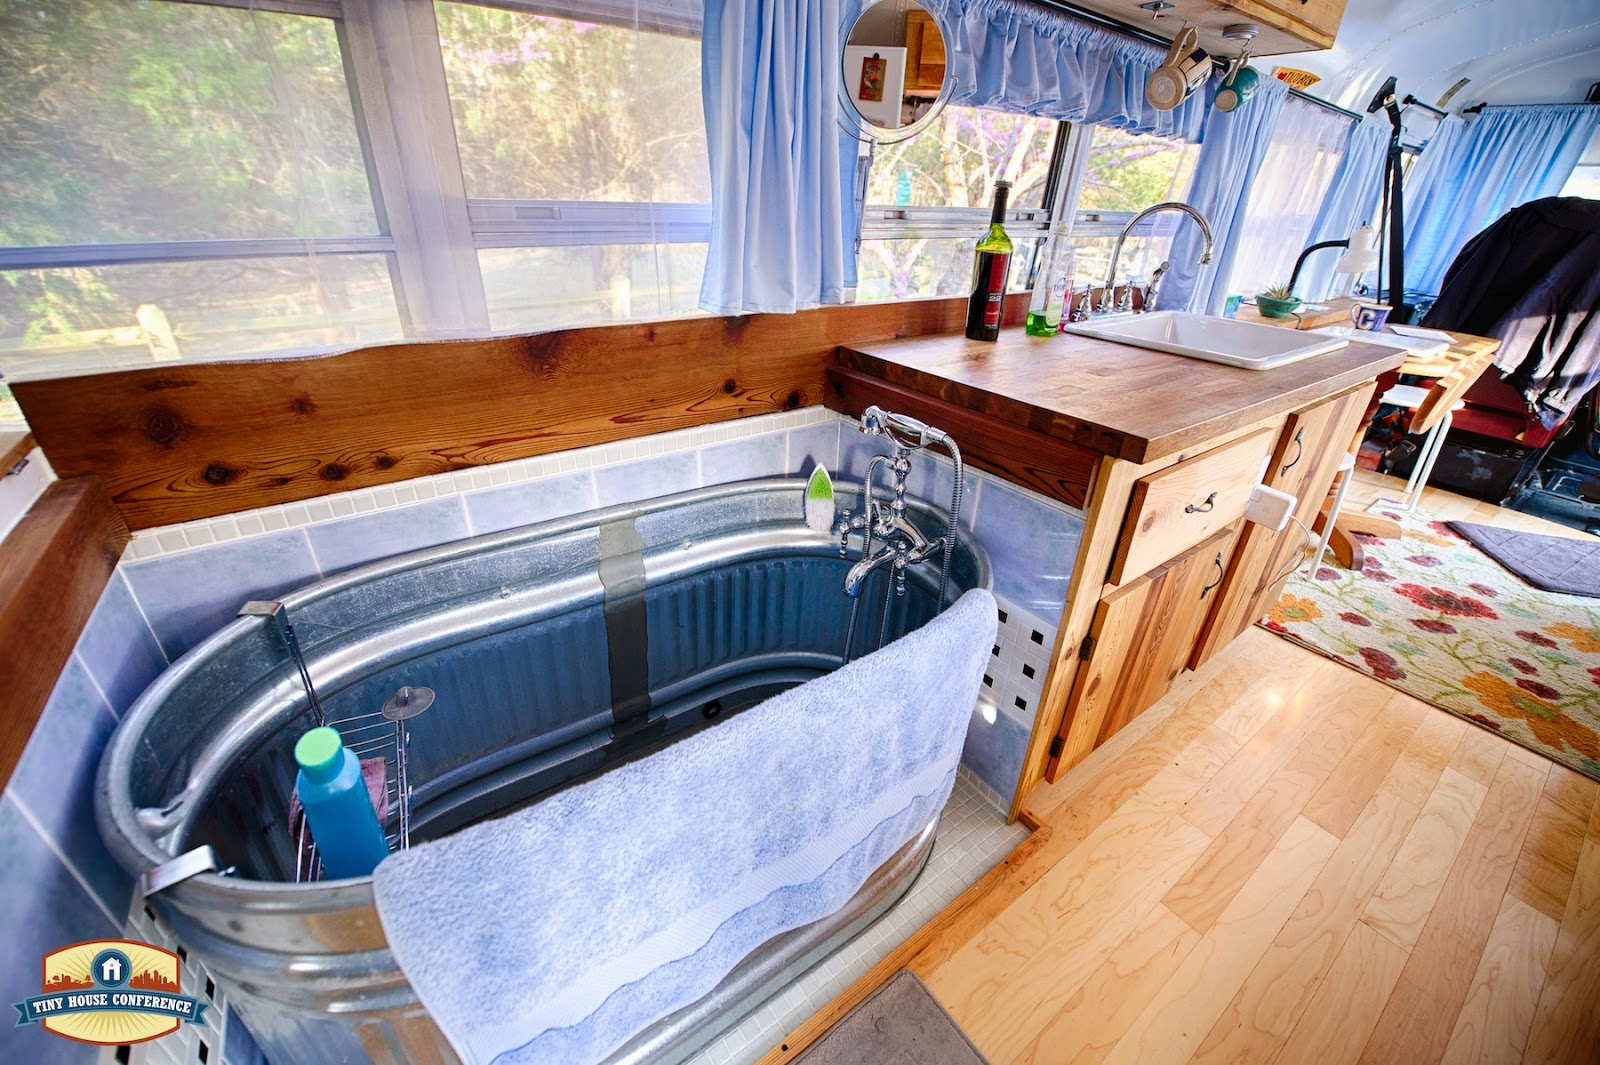 Just Right Bus: Living with a Water Trough Bathtub